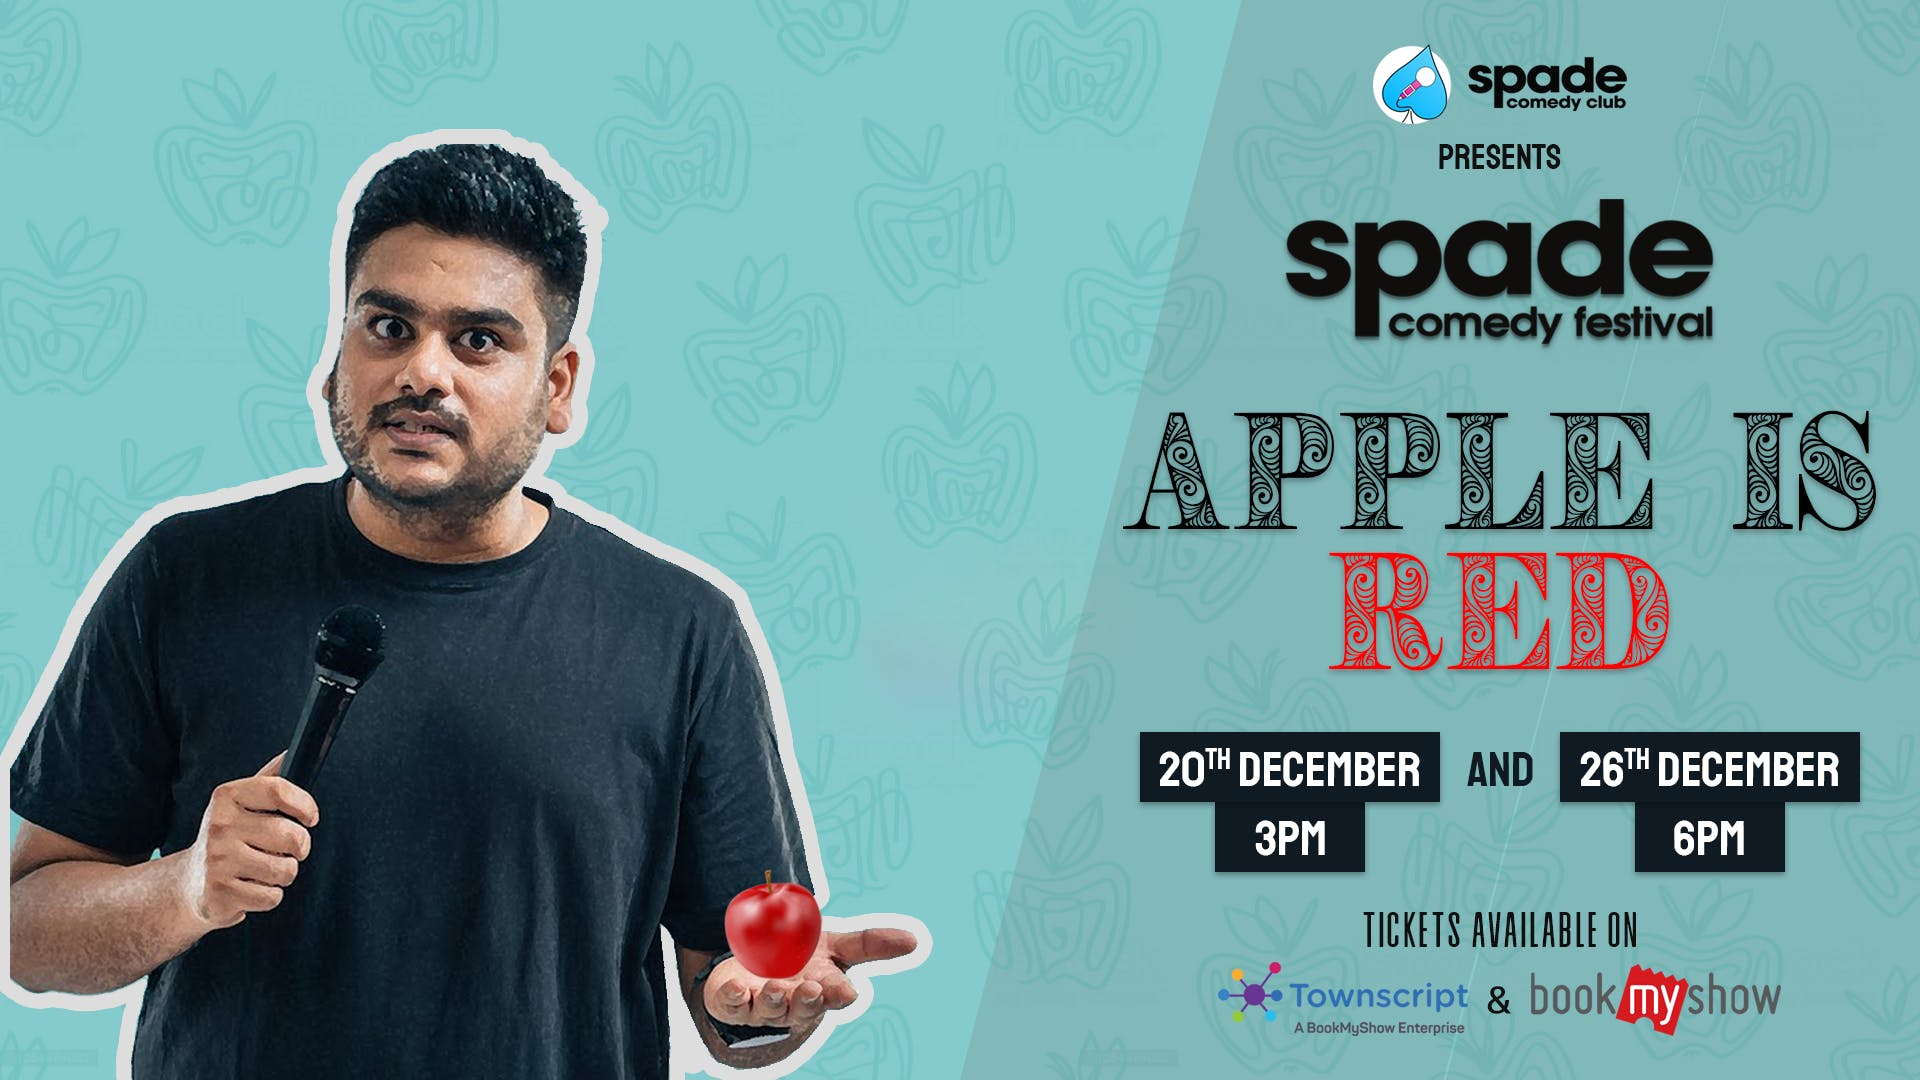 Apple Is Red by Vaibhav Sethia at Spade Comedy Festival